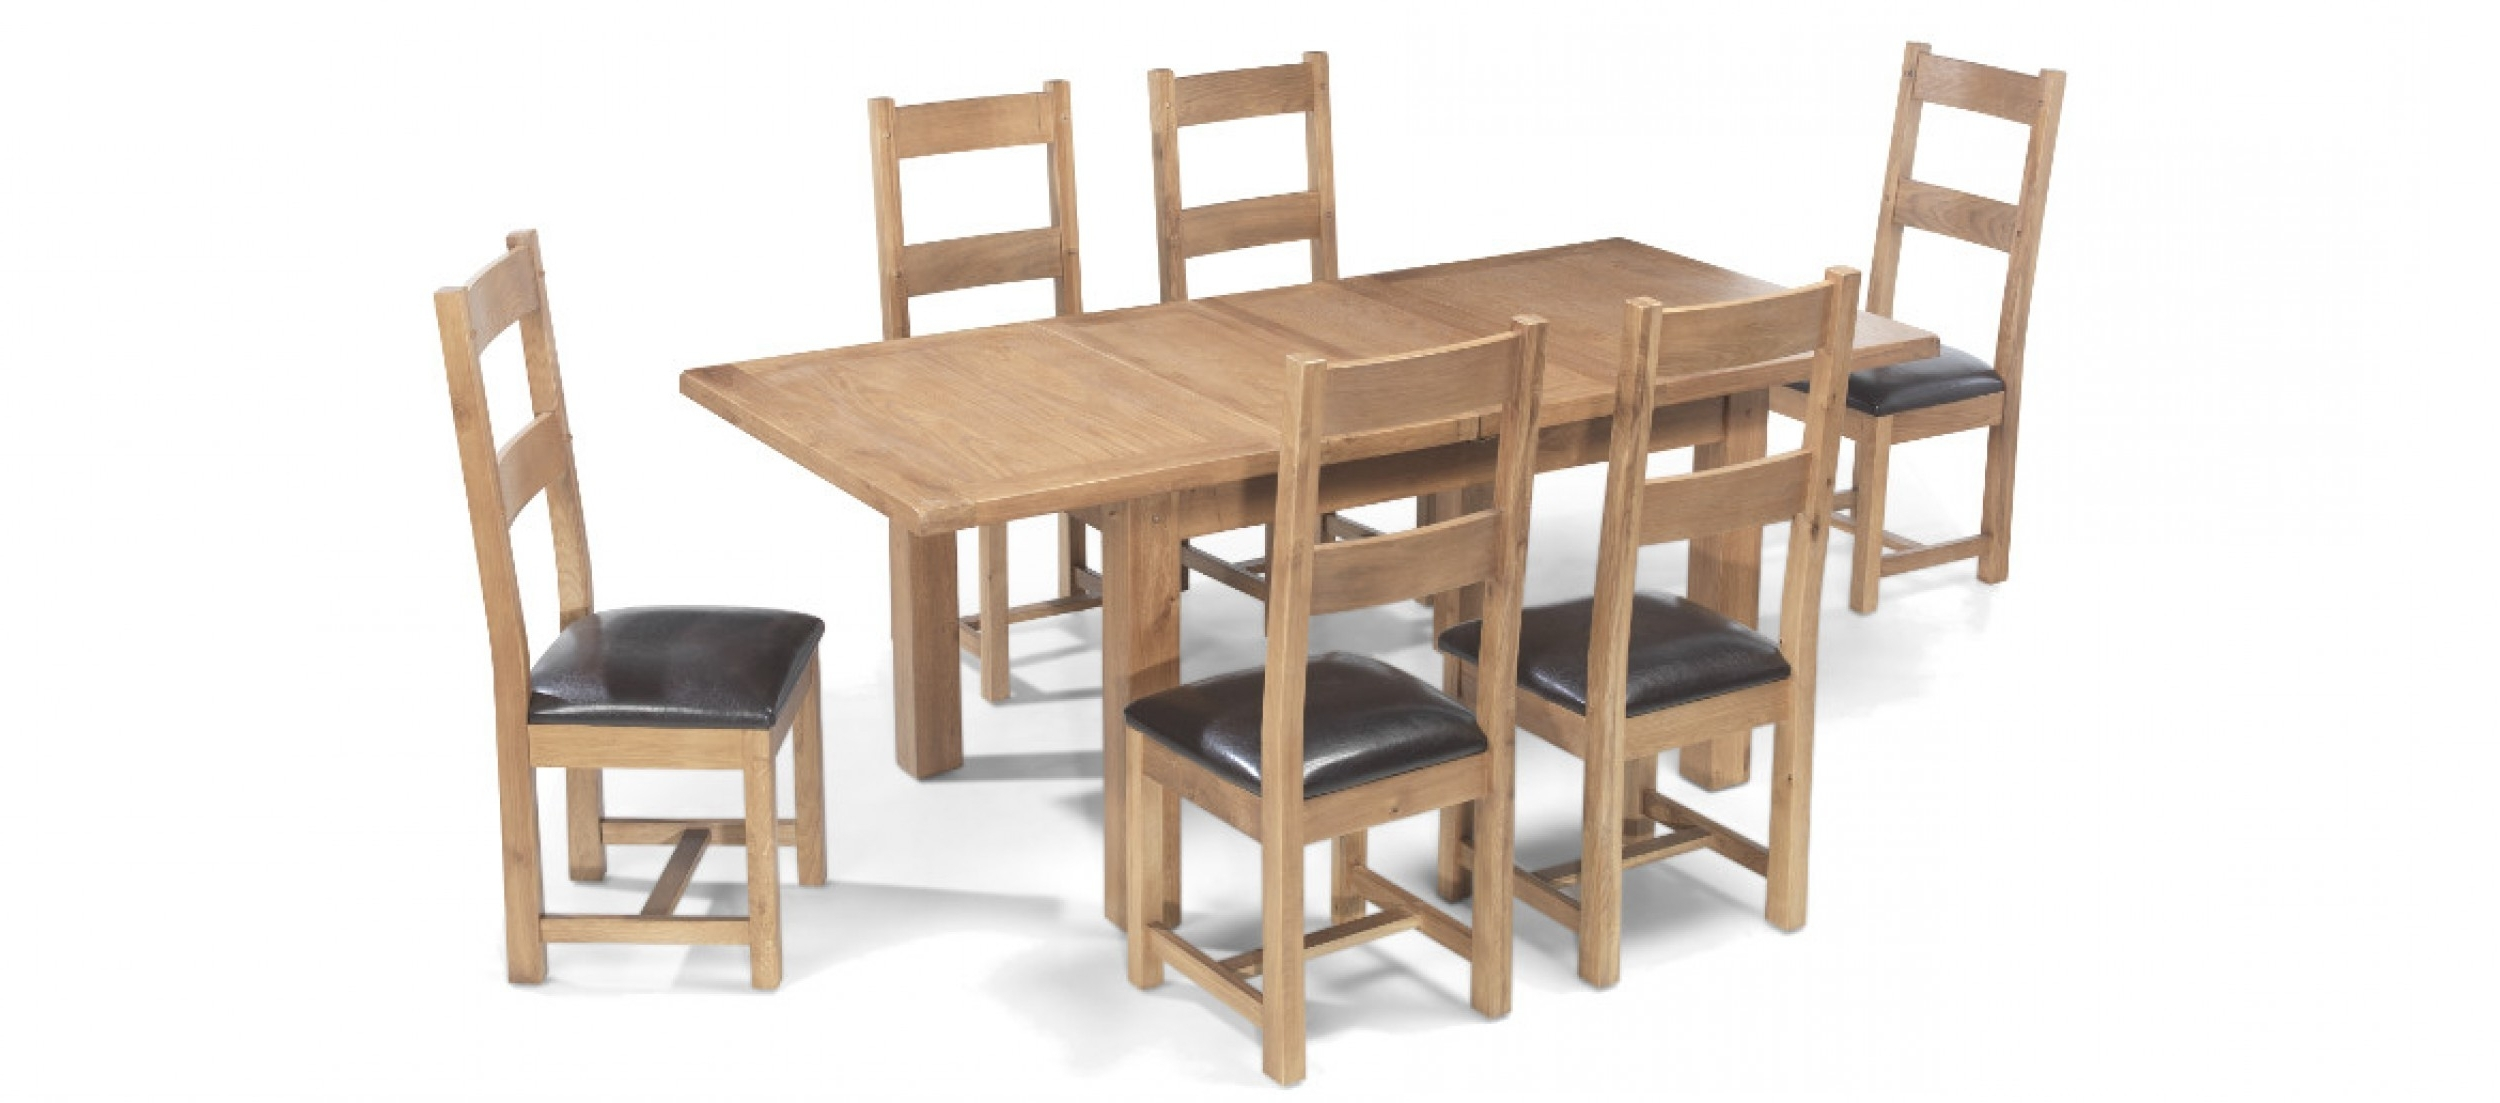 Quercus With Most Up To Date Extending Dining Room Tables And Chairs (Gallery 5 of 25)